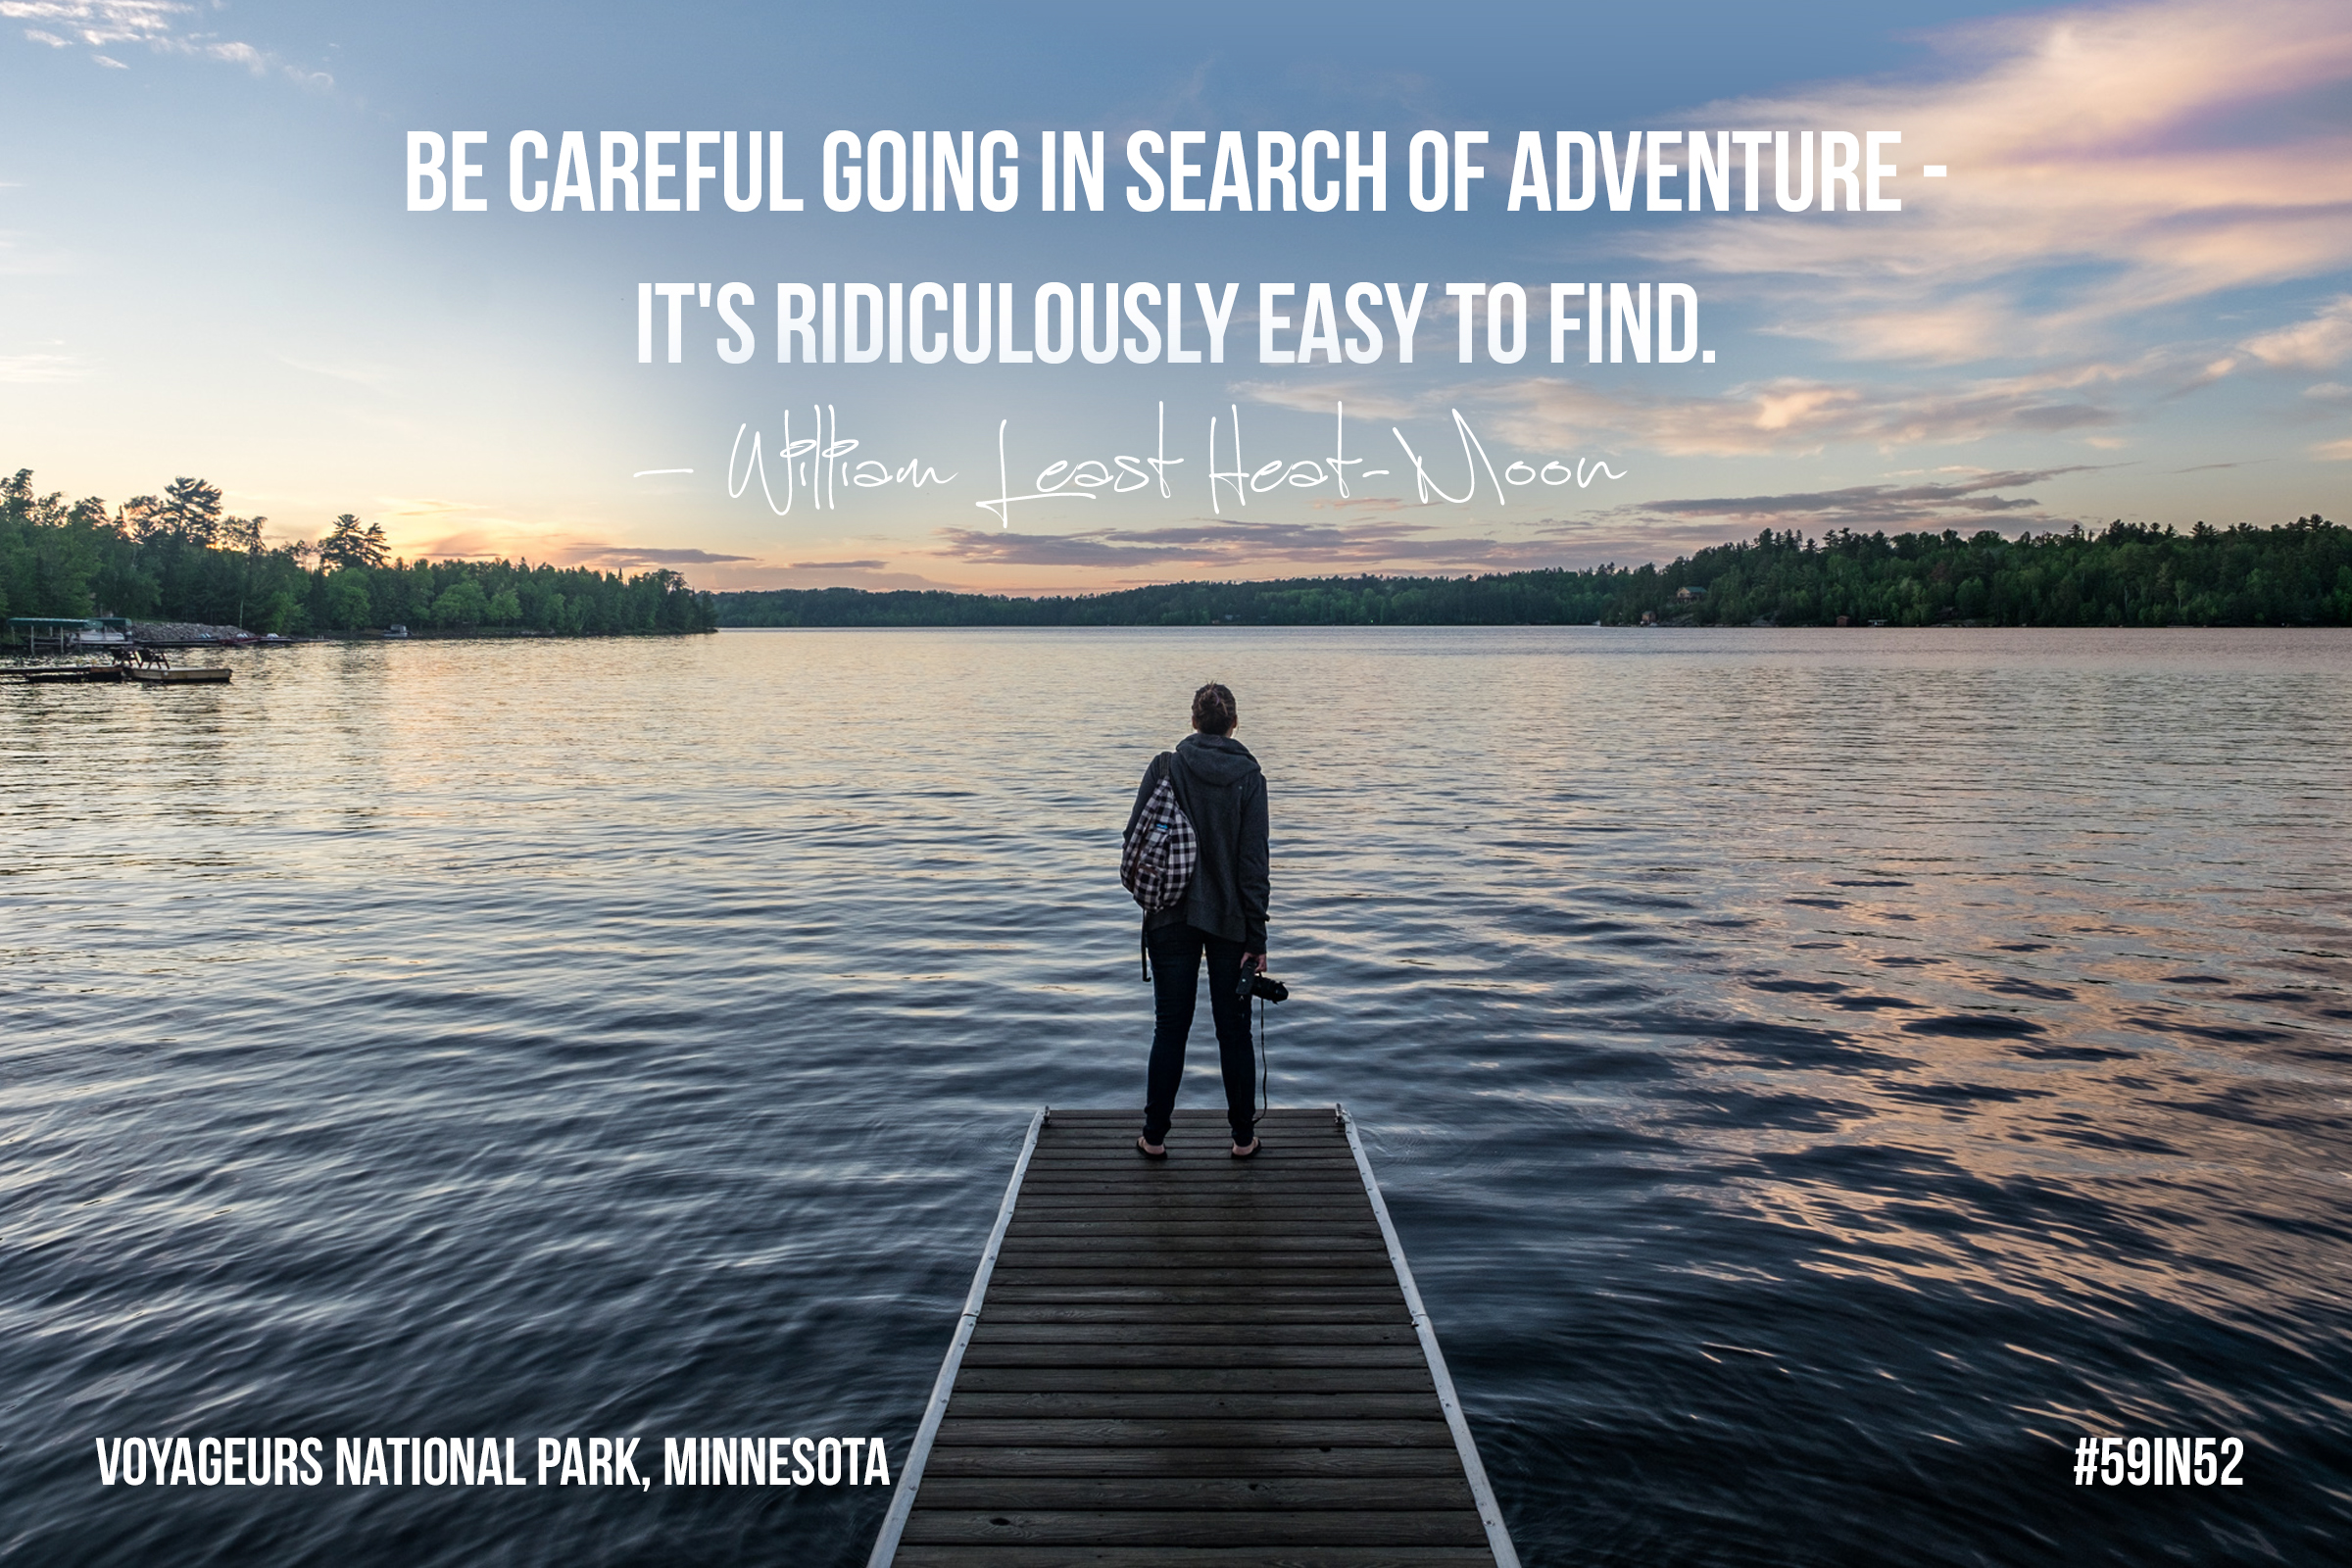 """Be careful going in search of adventure, it is rediculously easy to find."" - William Least Heat-Moon"